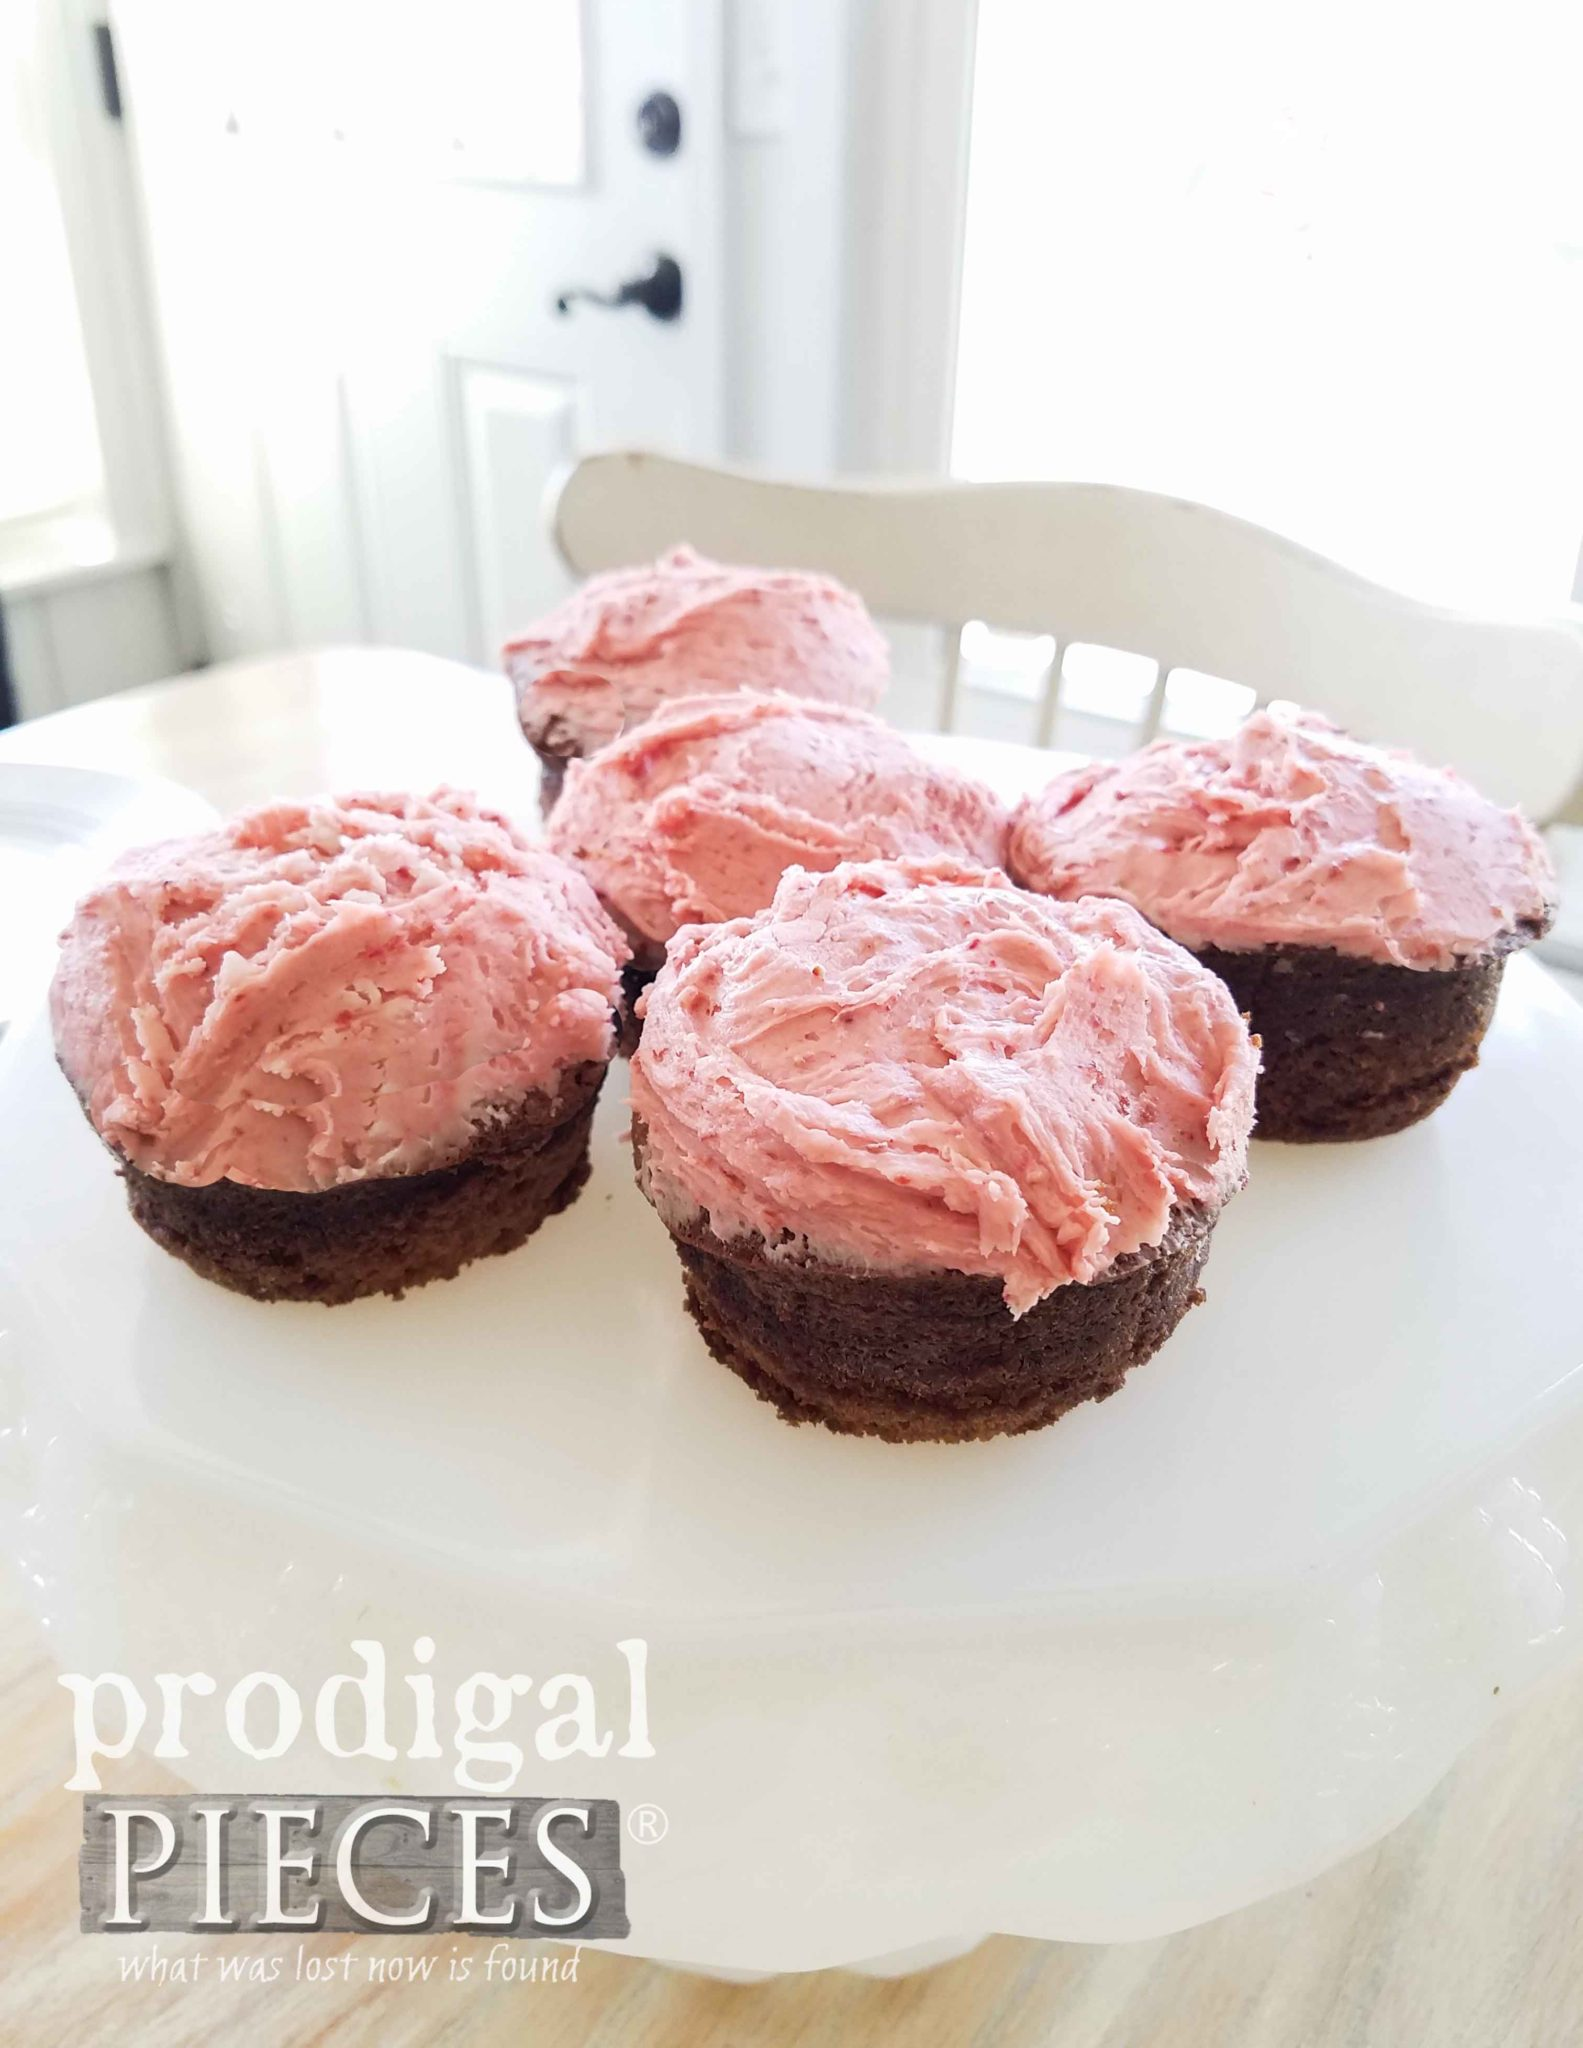 Real Strawberry Frosting on Grain-Free Chocolate Cupcakes by Larissa of Prodigal Pieces | prodigalpieces.com